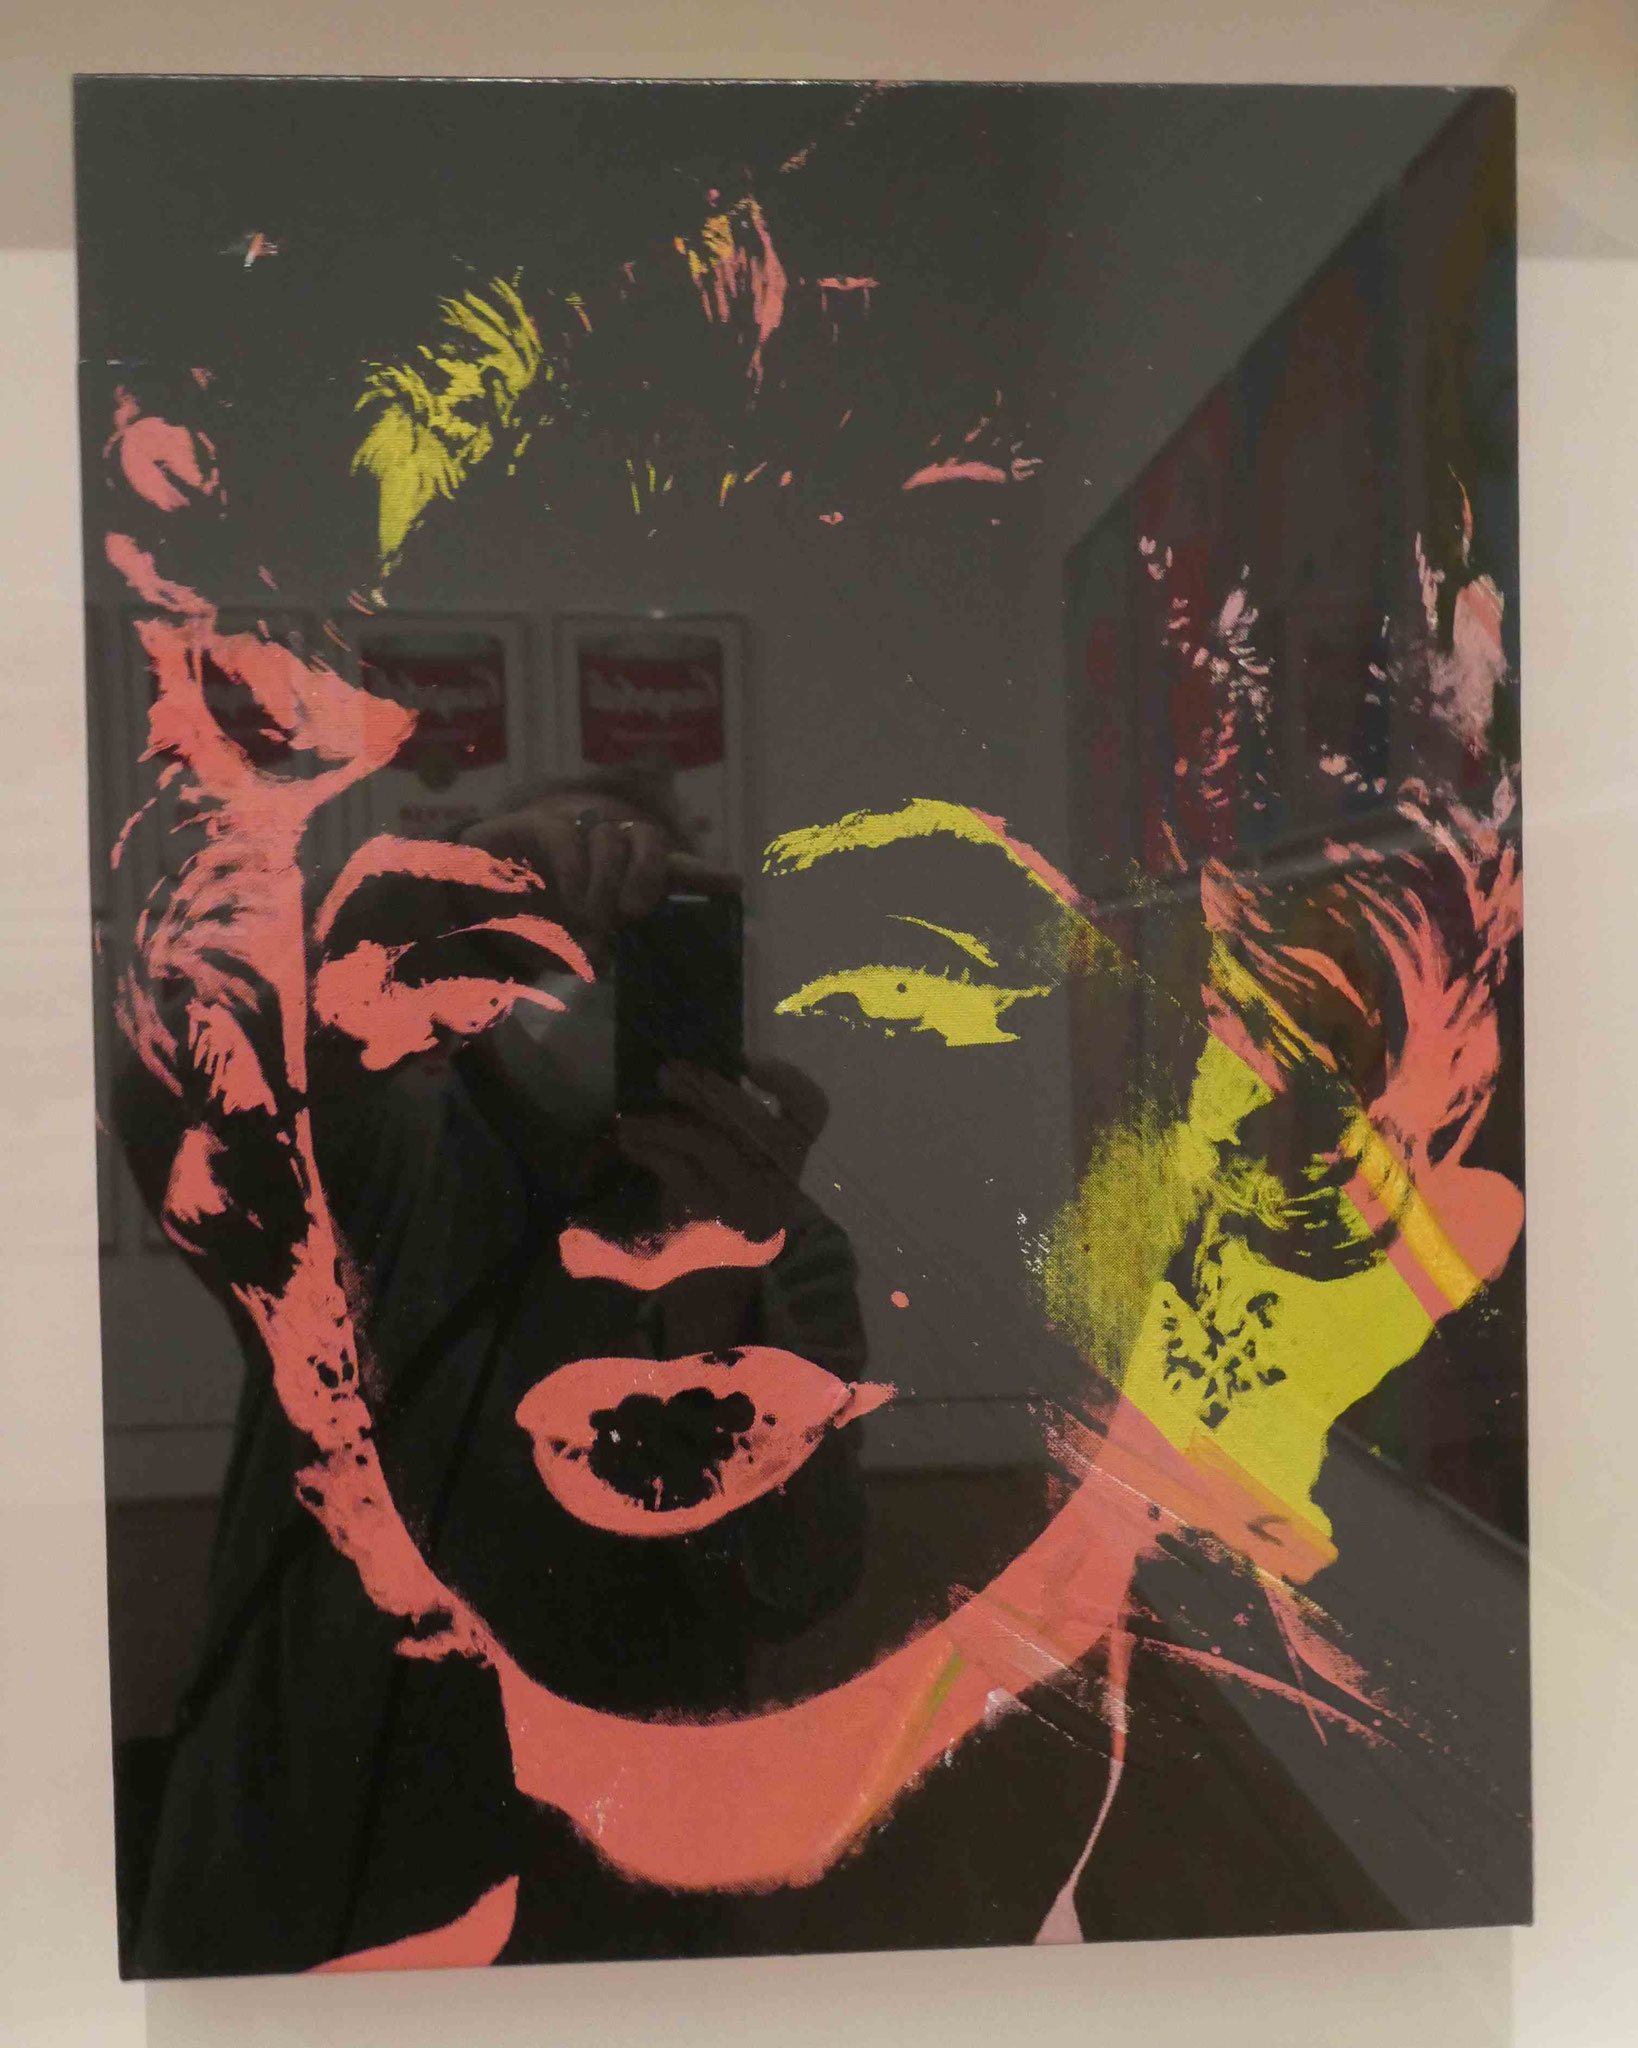 Andy Warhol, Multicolored Marilyn, Siebdruck und Acryl auf Leinwand, 1979 -1986, Nationalgalerie Berlin